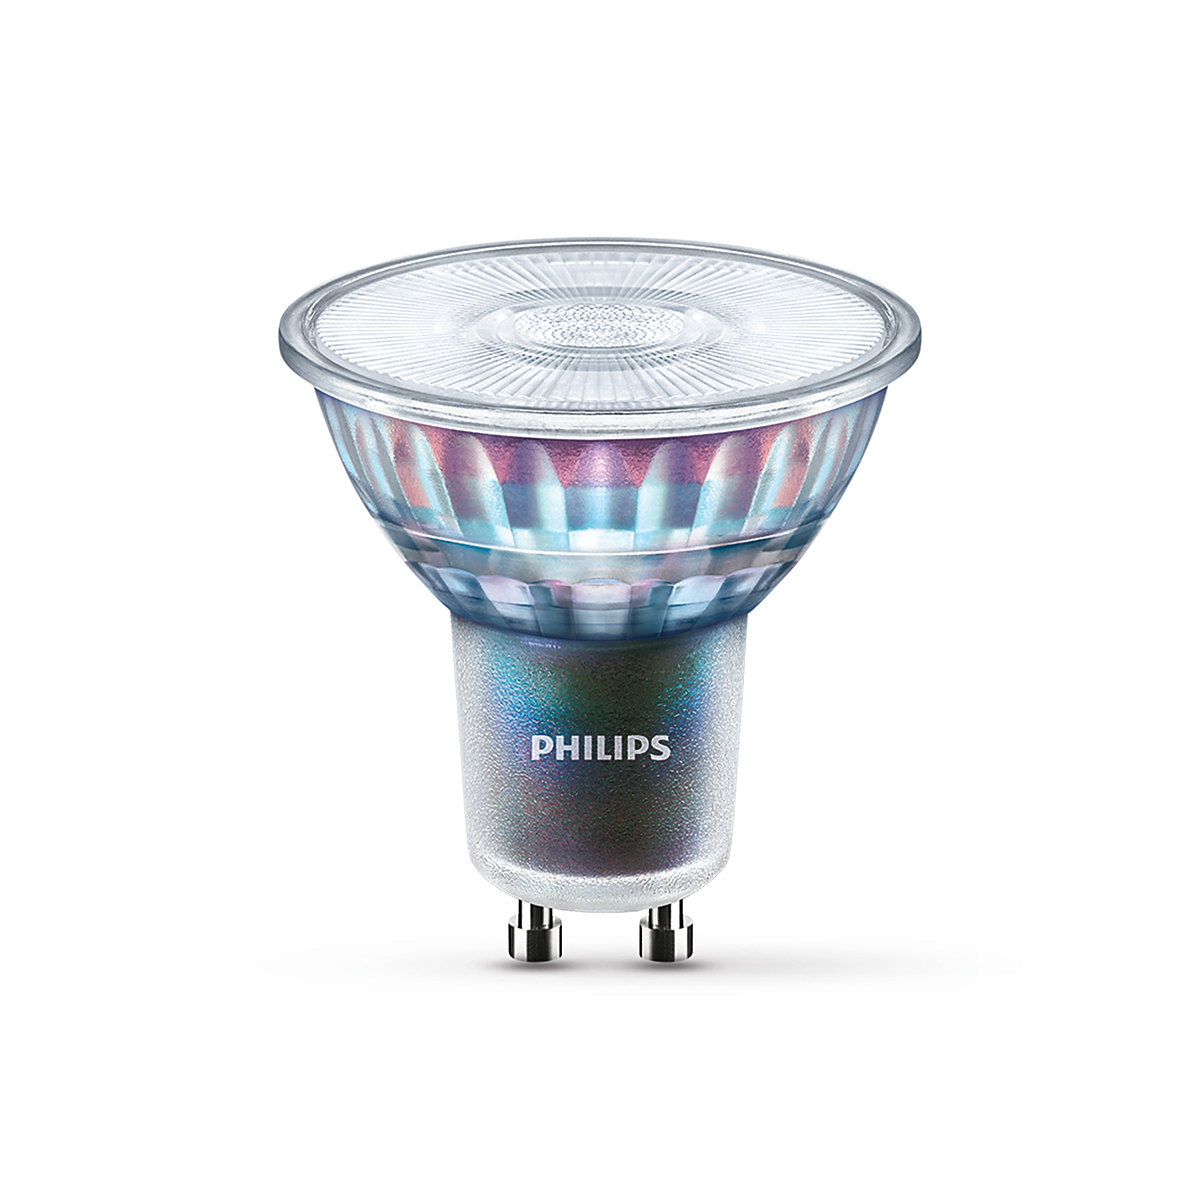 master led lampen philips philips lighting. Black Bedroom Furniture Sets. Home Design Ideas